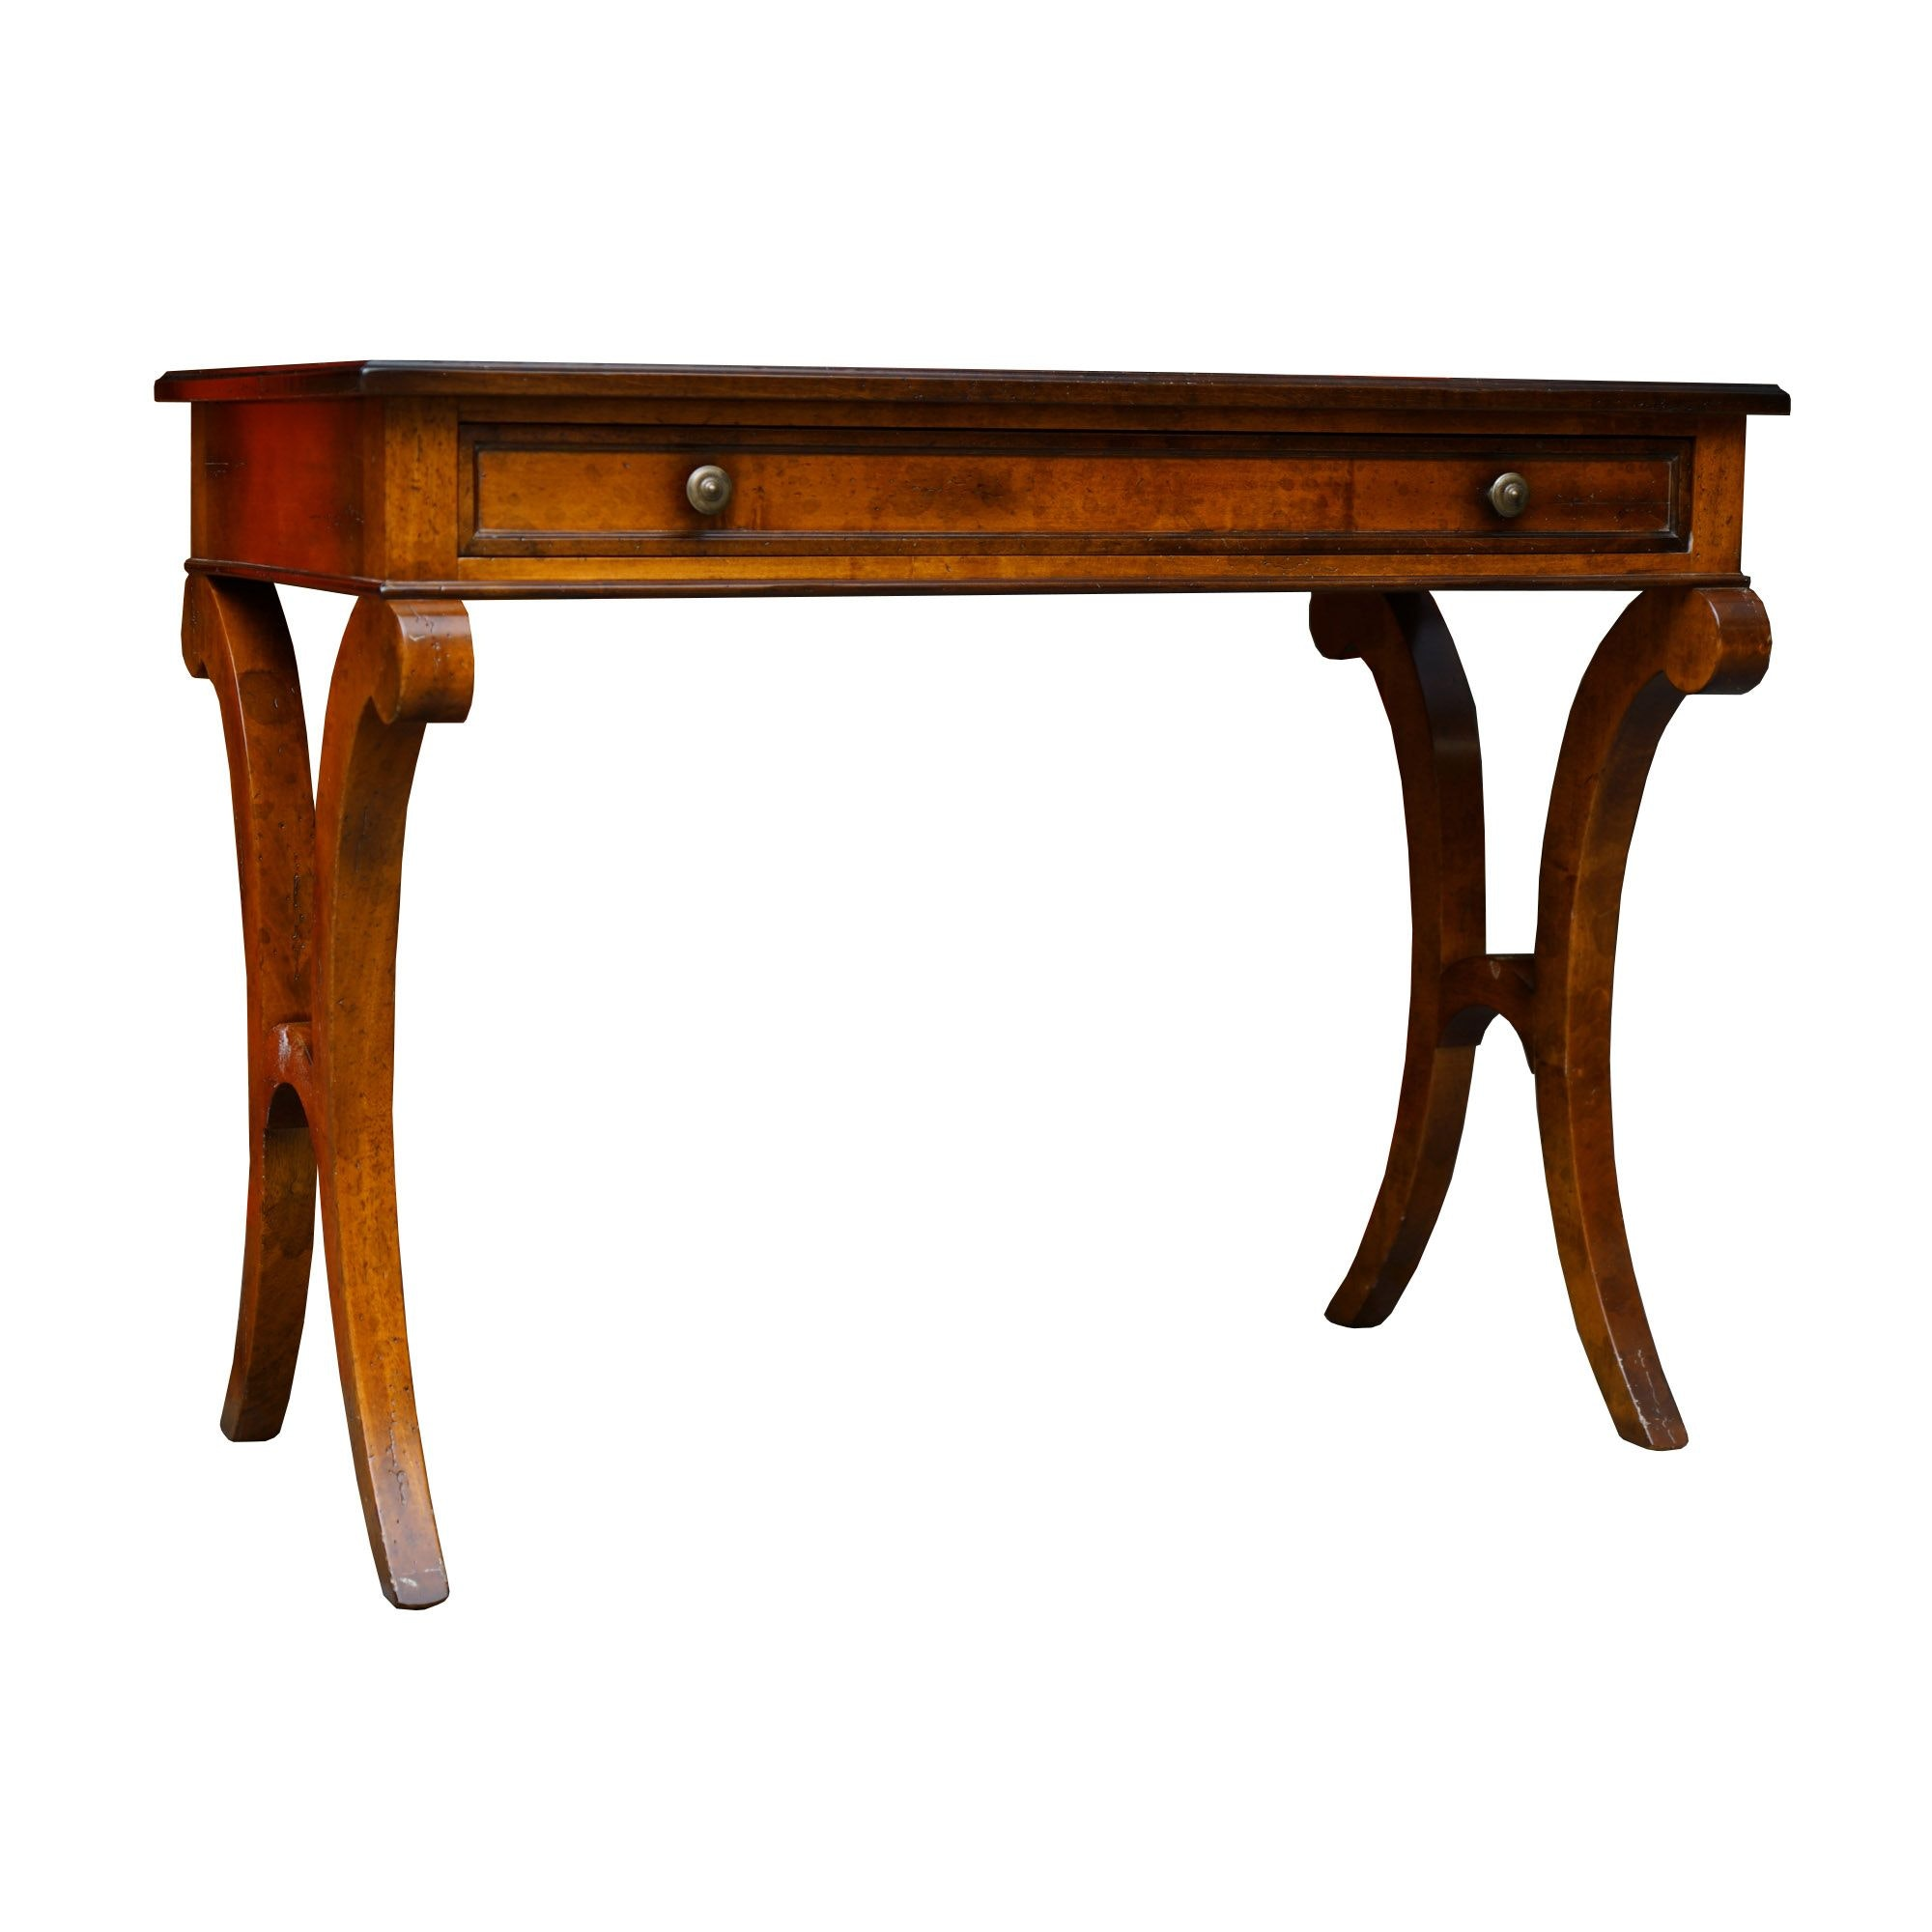 Milling Road Writing Table by Baker's Furniture